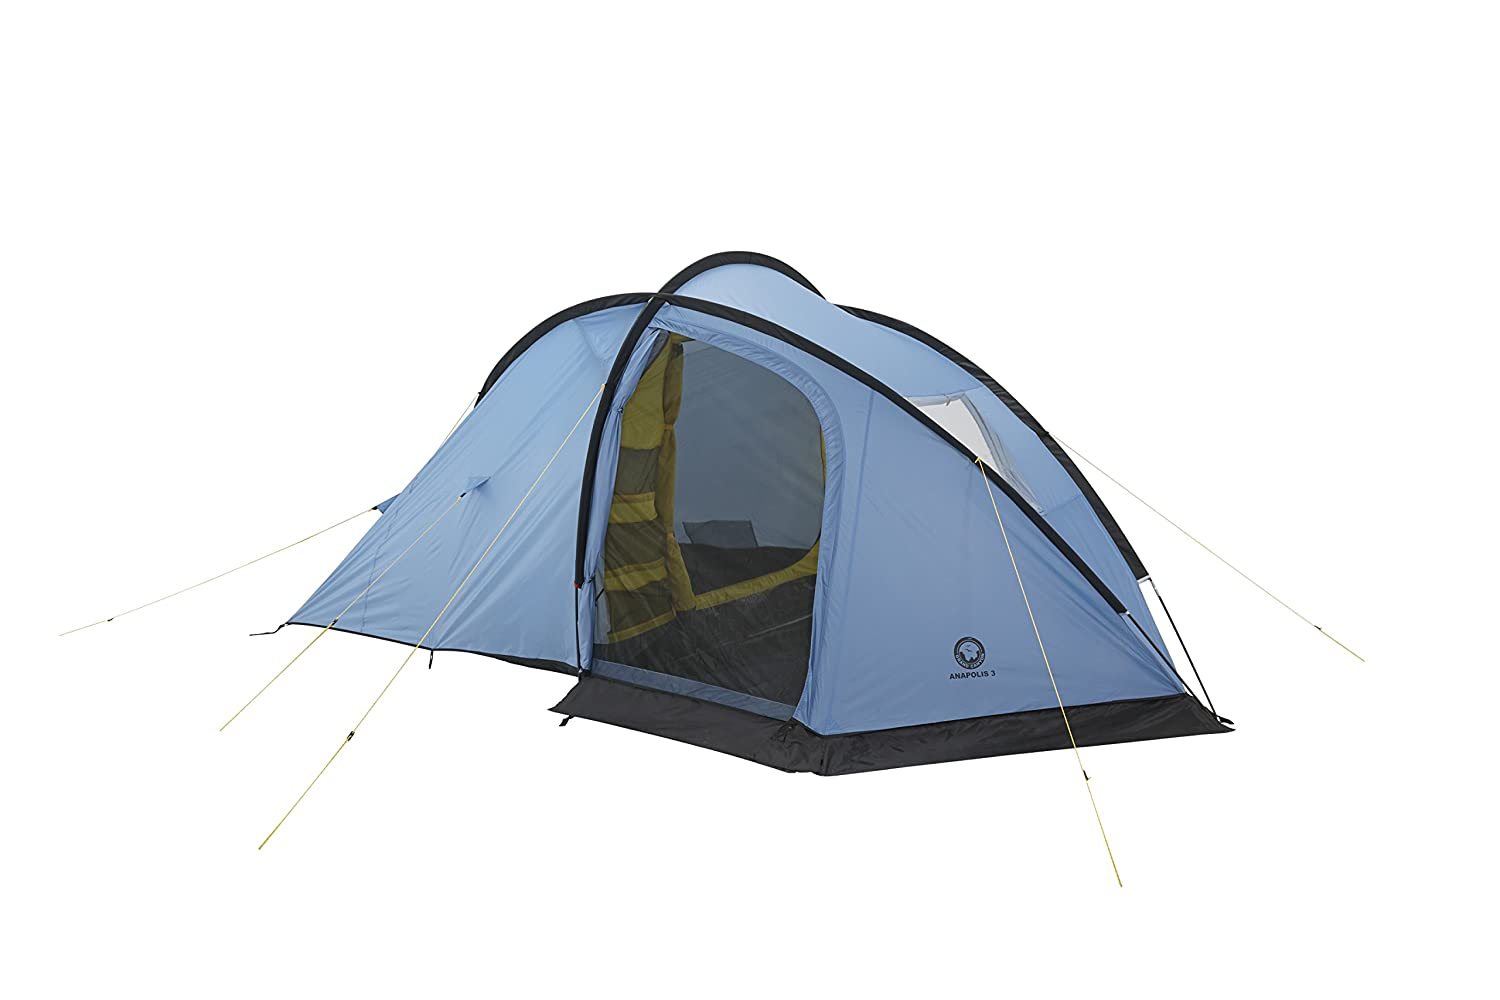 Grand Canyon Waterproof Annapolis Unisex Outdoor Dome Tent available in  Blue/Black - 3 Persons: Amazon.co.uk: Sports & Outdoors